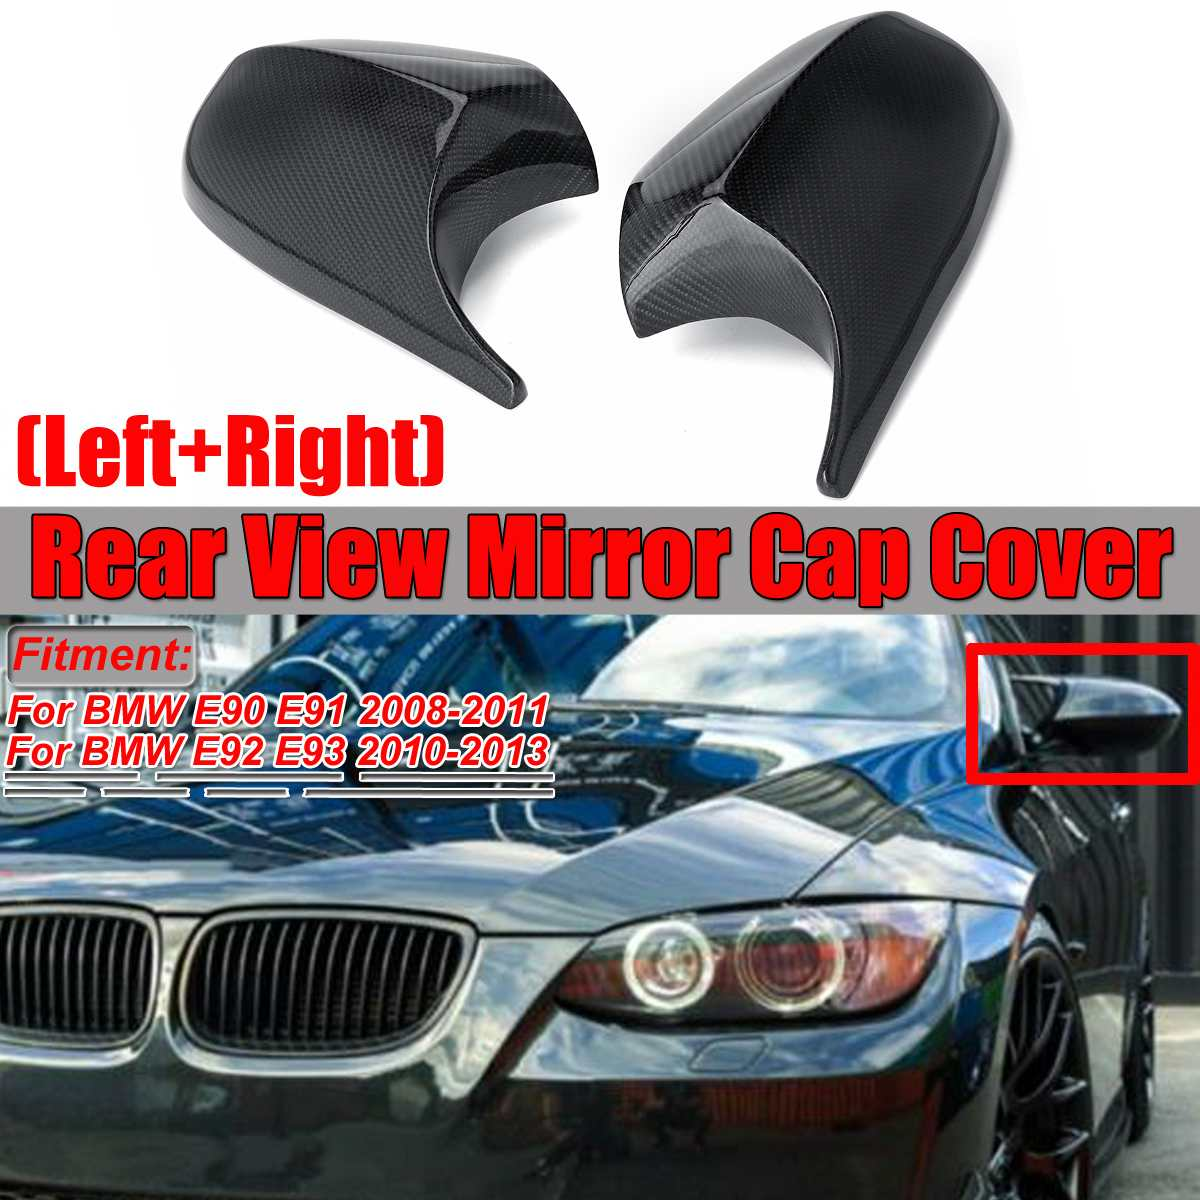 2PCS Real Carbon Fiber/ABS Mirror Cover E90 Car Rearview Mirror Cap Cover Direct Replace For BMW E90 E91 08-11 E92 E93 10-13 LCI